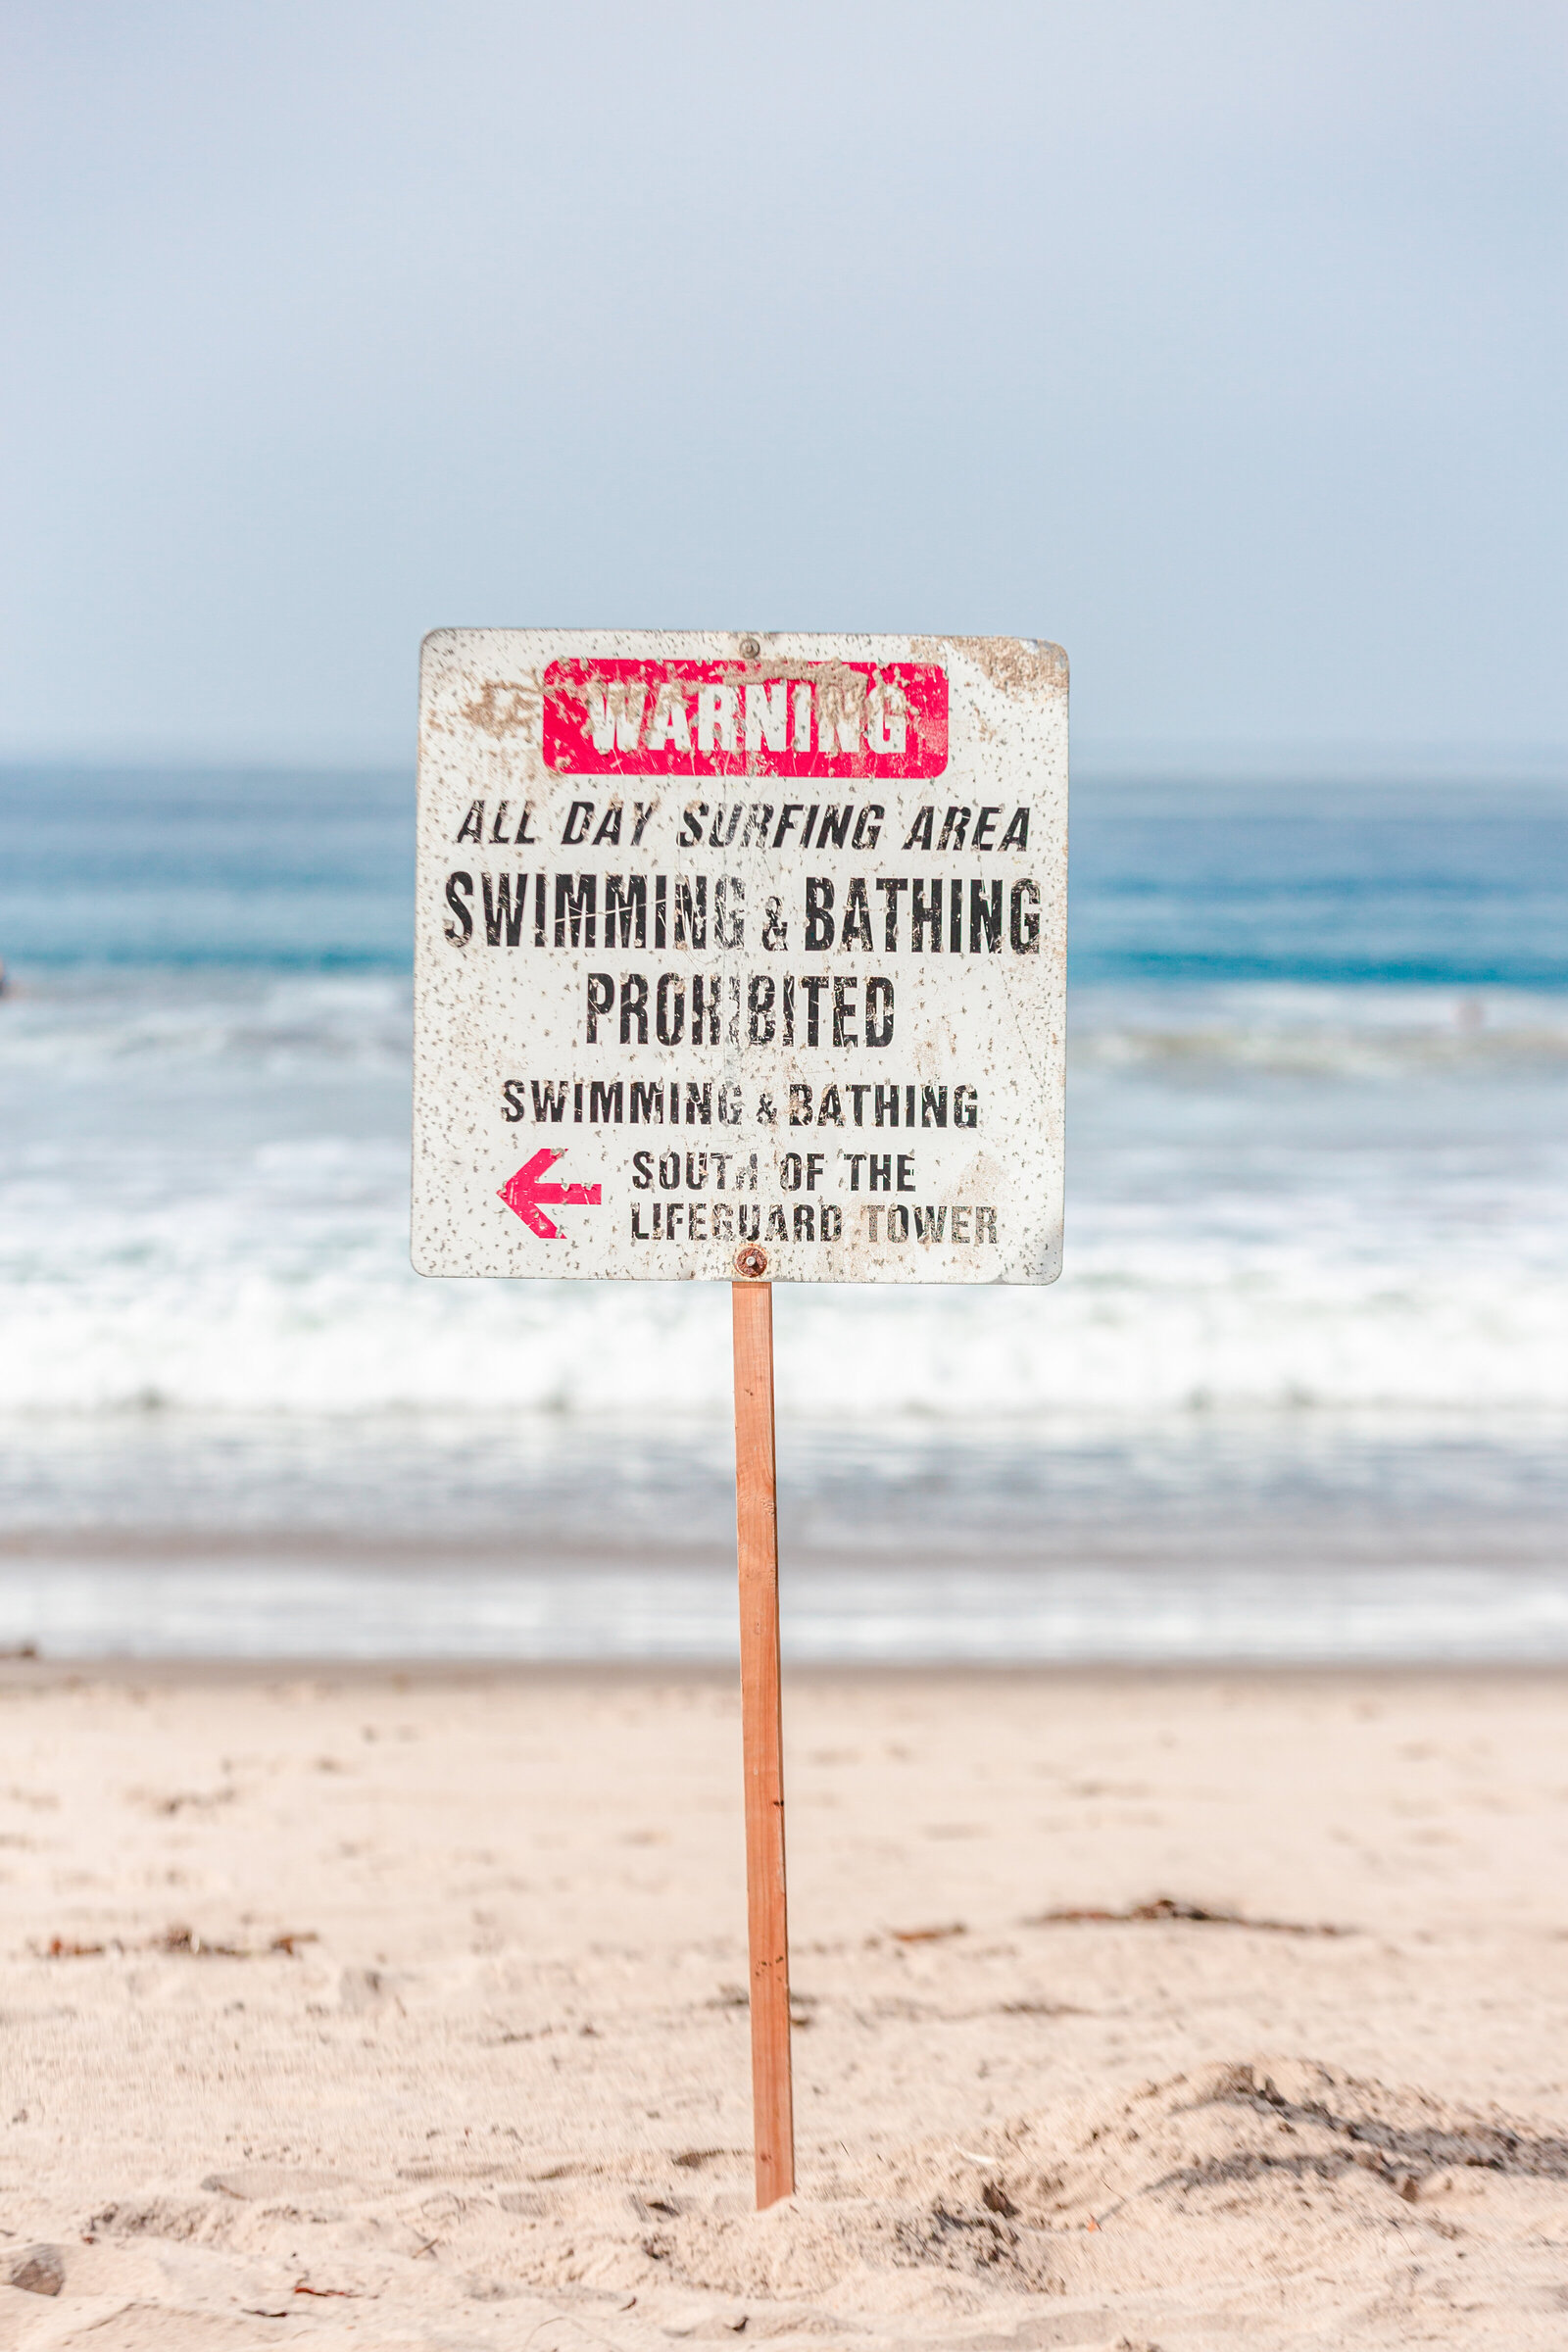 006-KBP-California-Beach-Ocean-No-Swimming